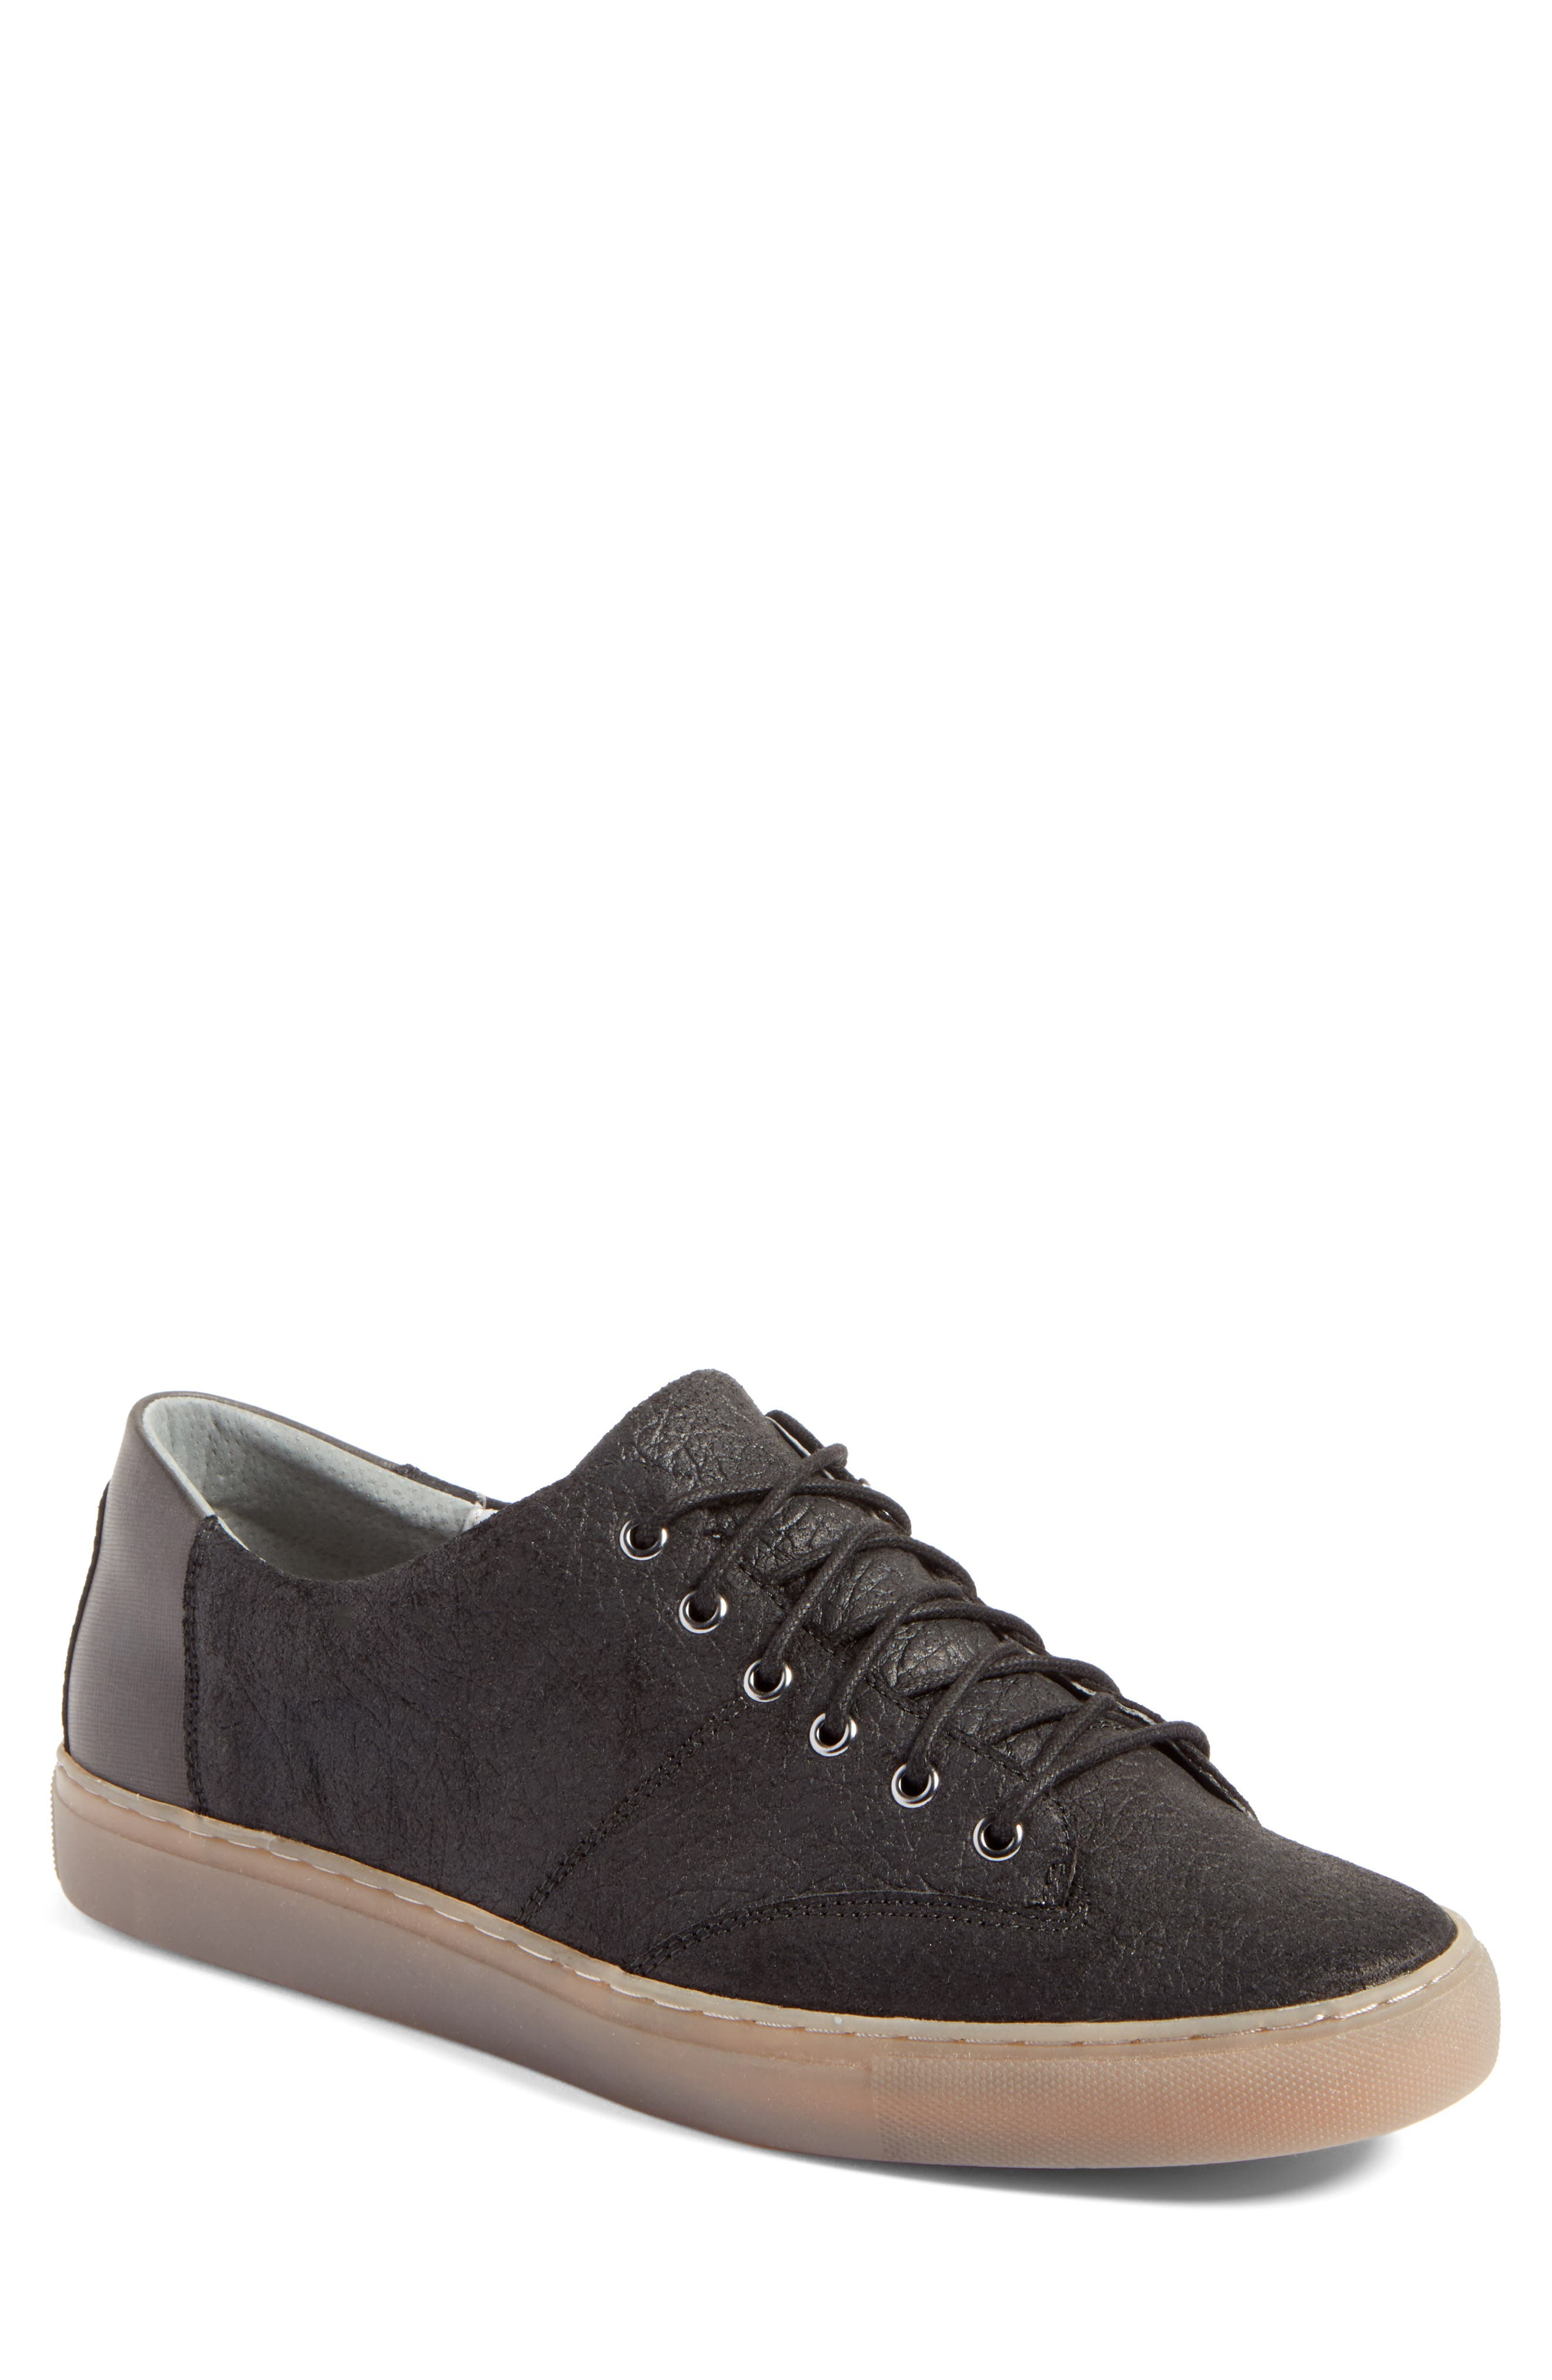 Alternate Image 1 Selected - TCG Cooper Sneaker (Men)